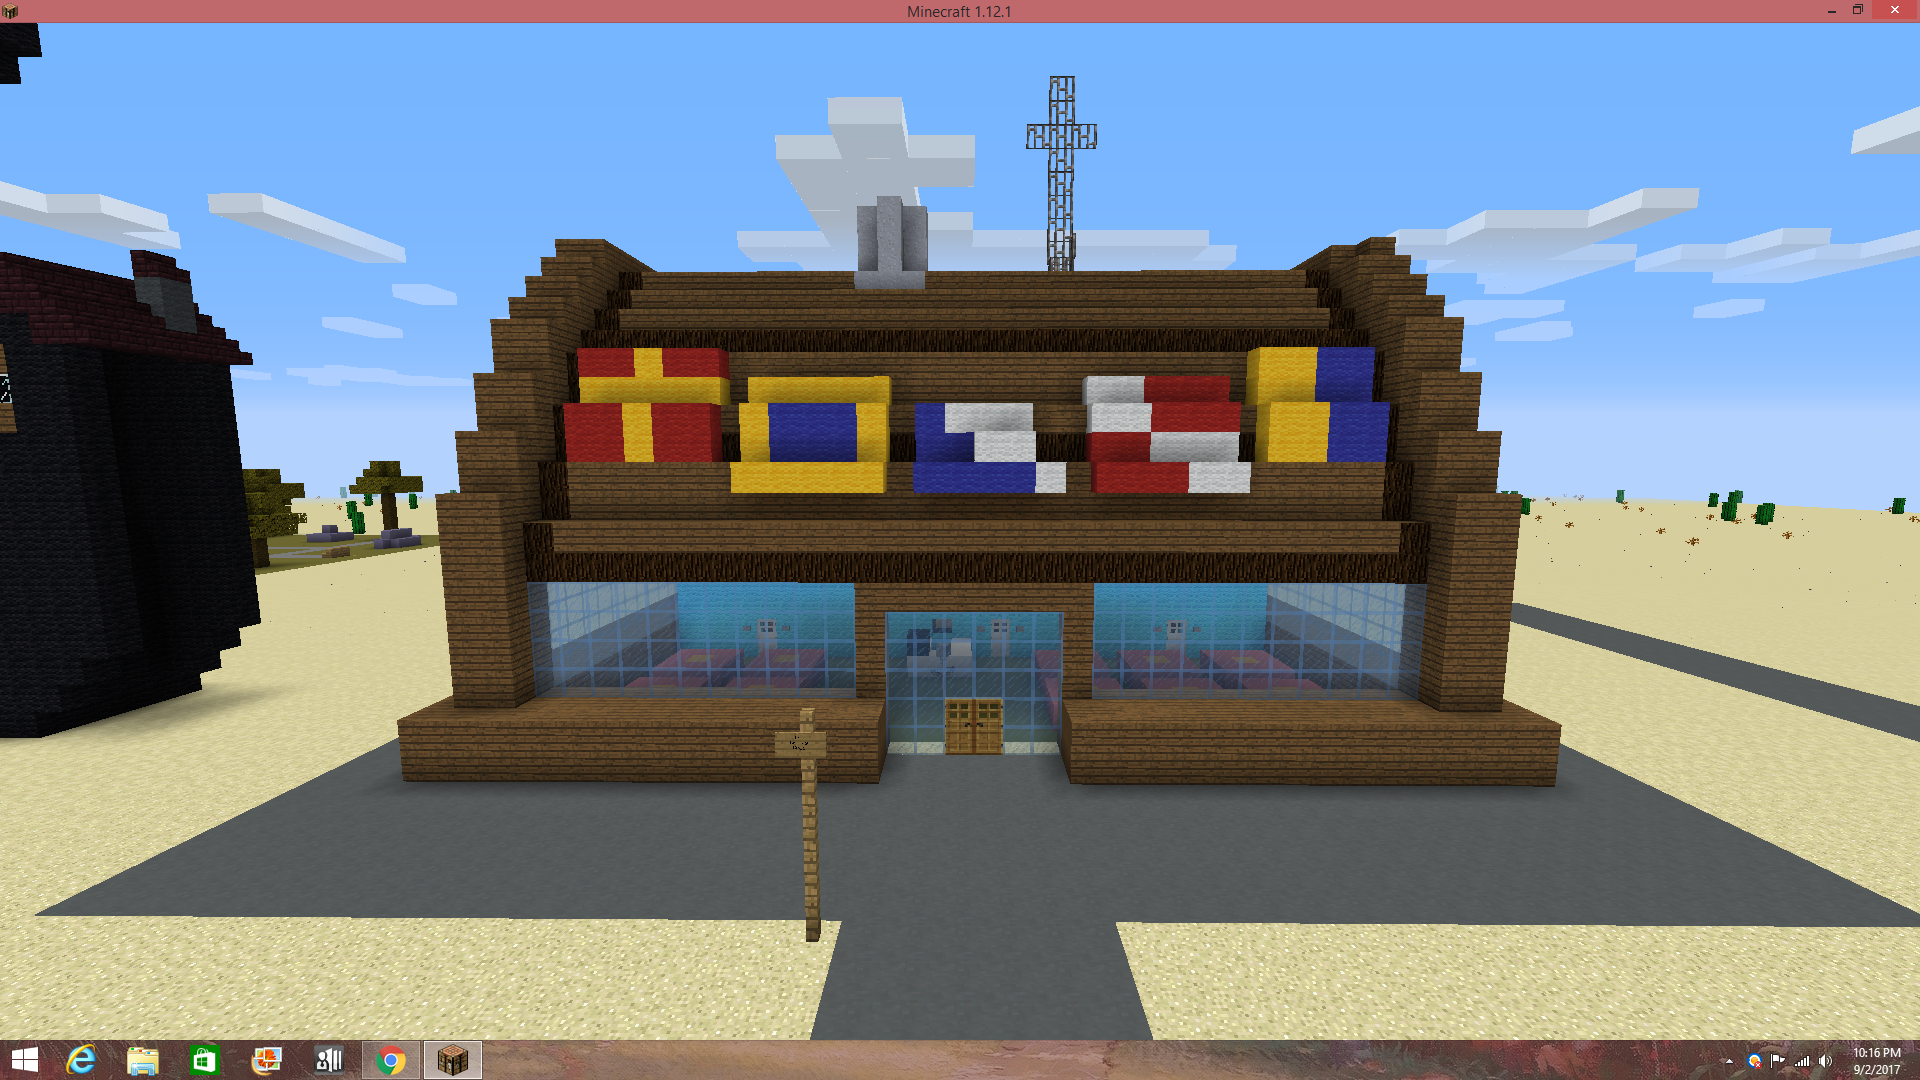 Pin on Minecraft Builds